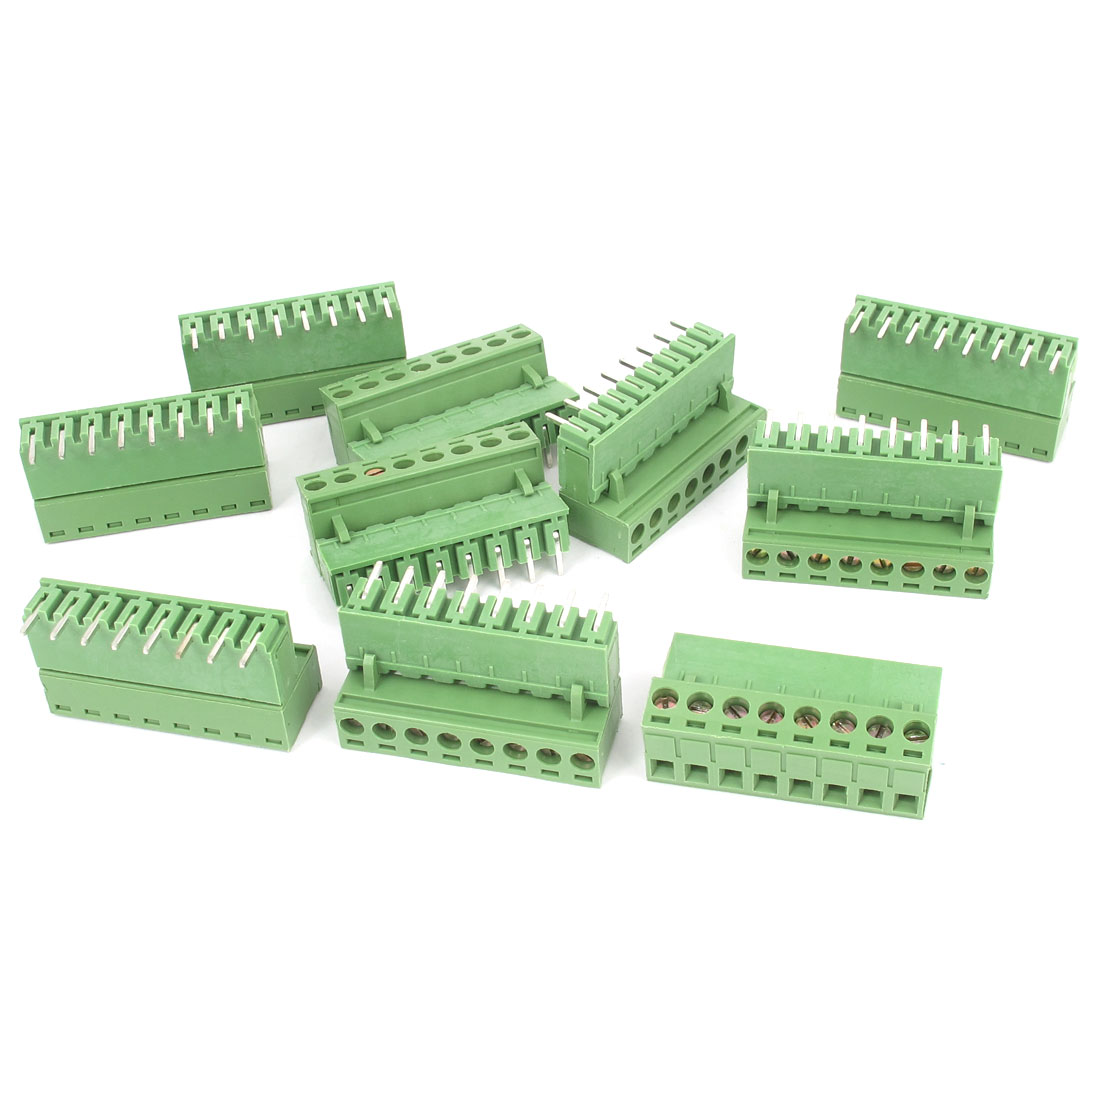 10Pcs AC 300V 10A 8P Pins PCB Screw Terminal Block Connector 5.08mm Pitch Green